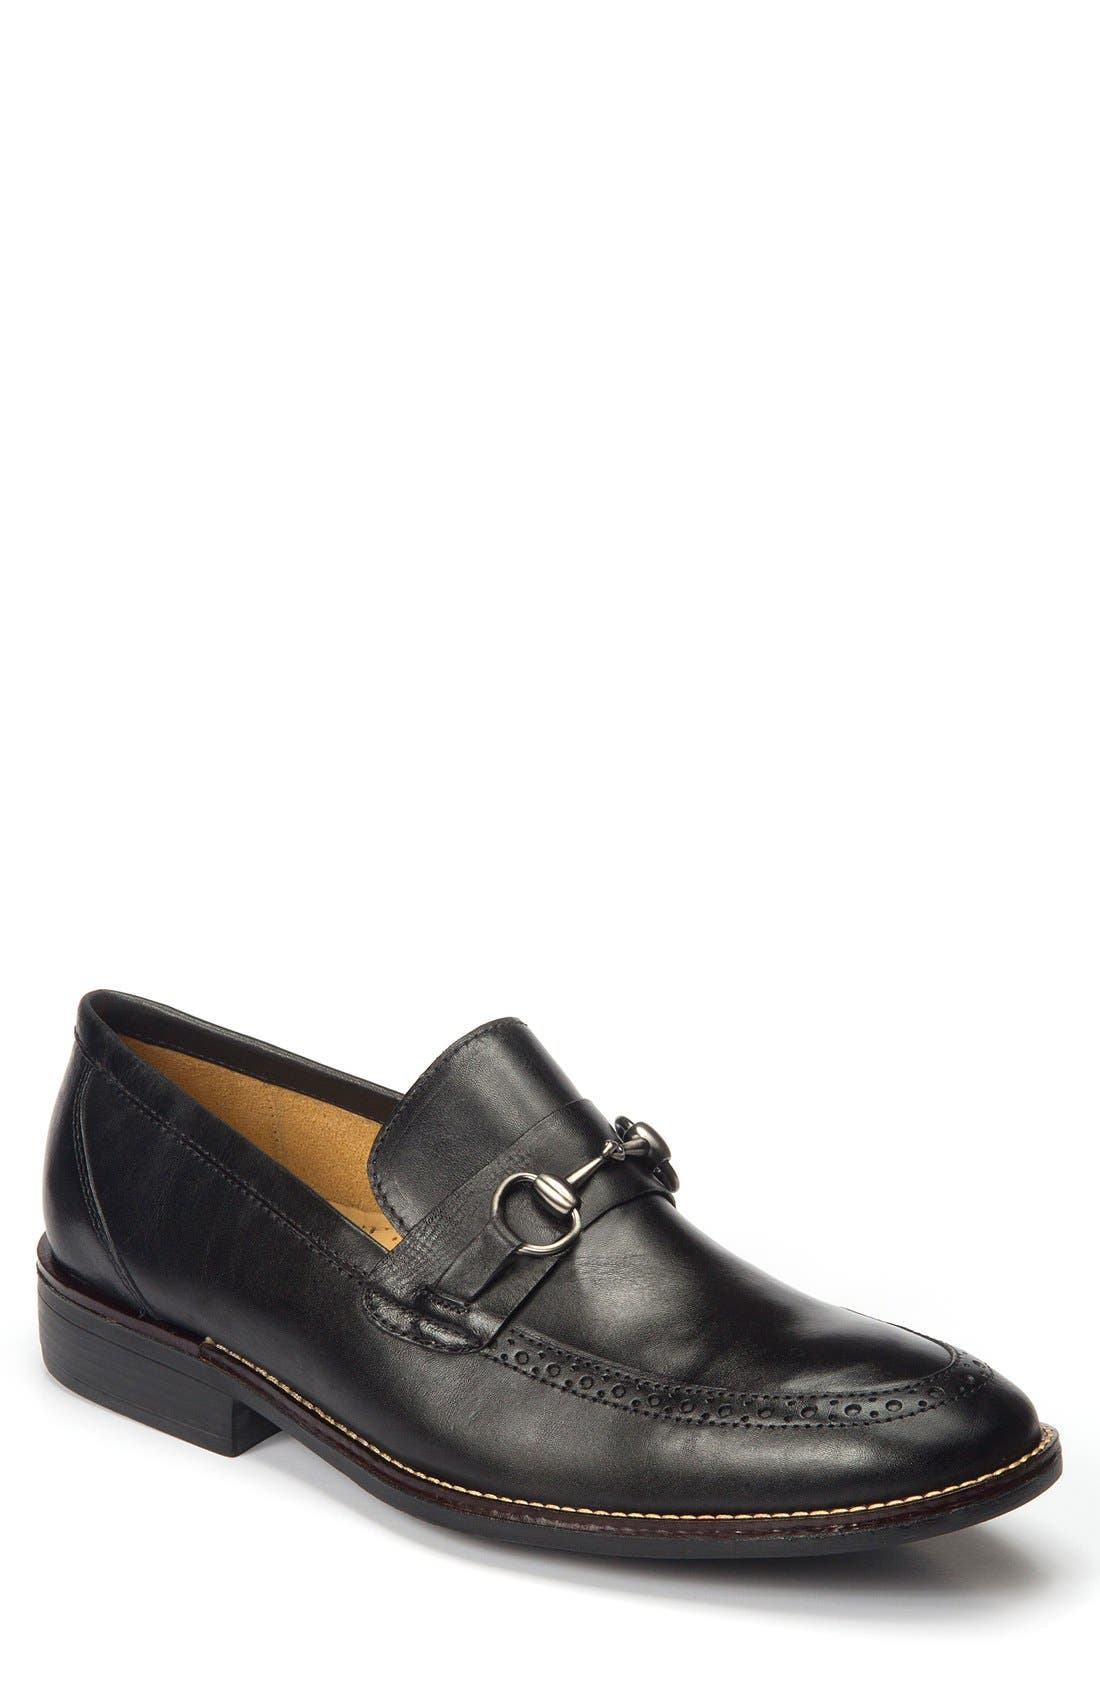 Wesley Bit Loafer,                             Main thumbnail 1, color,                             Black Leather